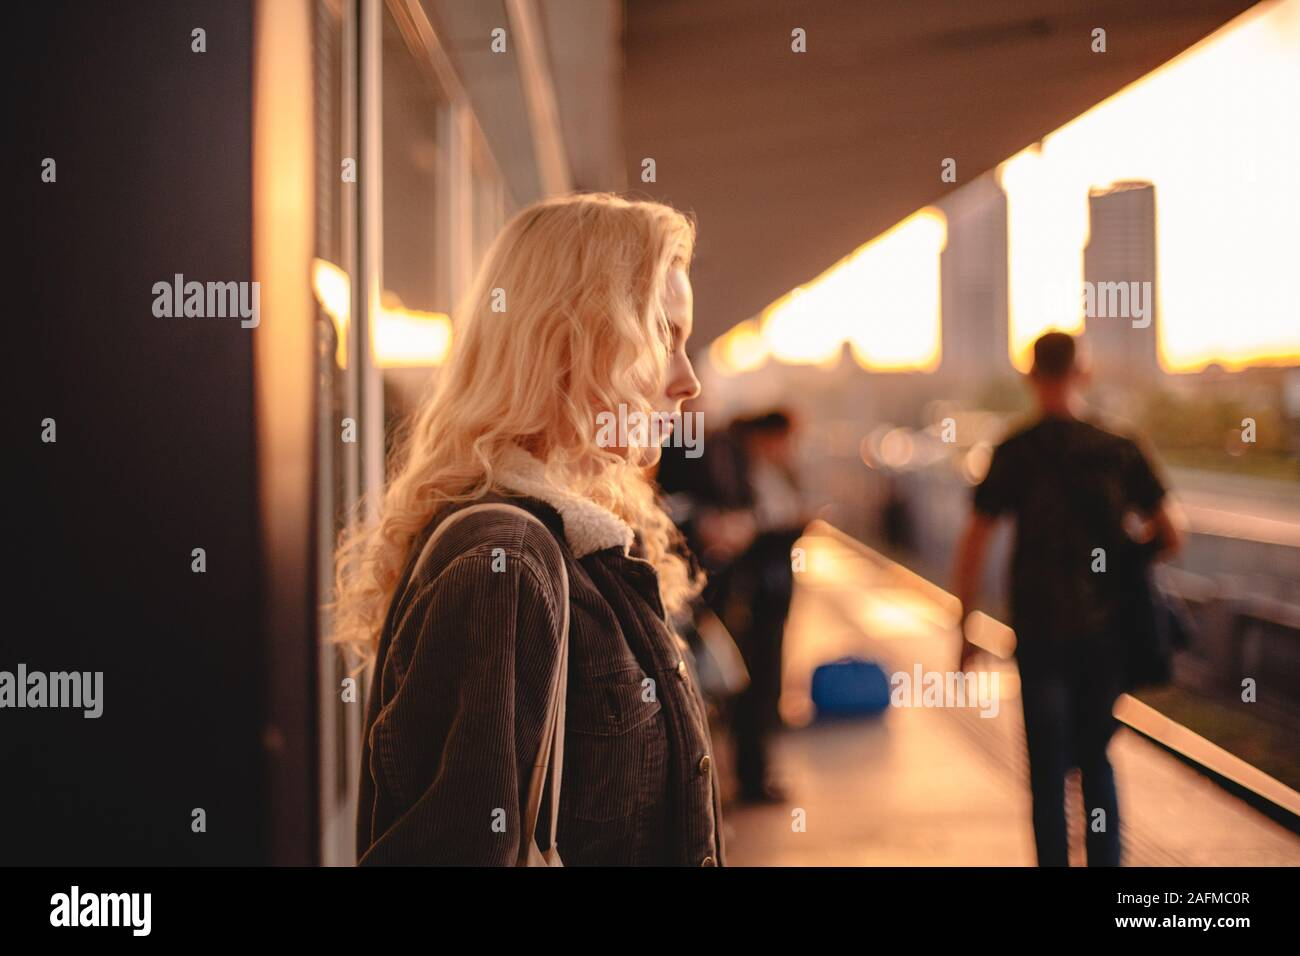 Young woman with blond hair waiting for train at subway station Stock Photo